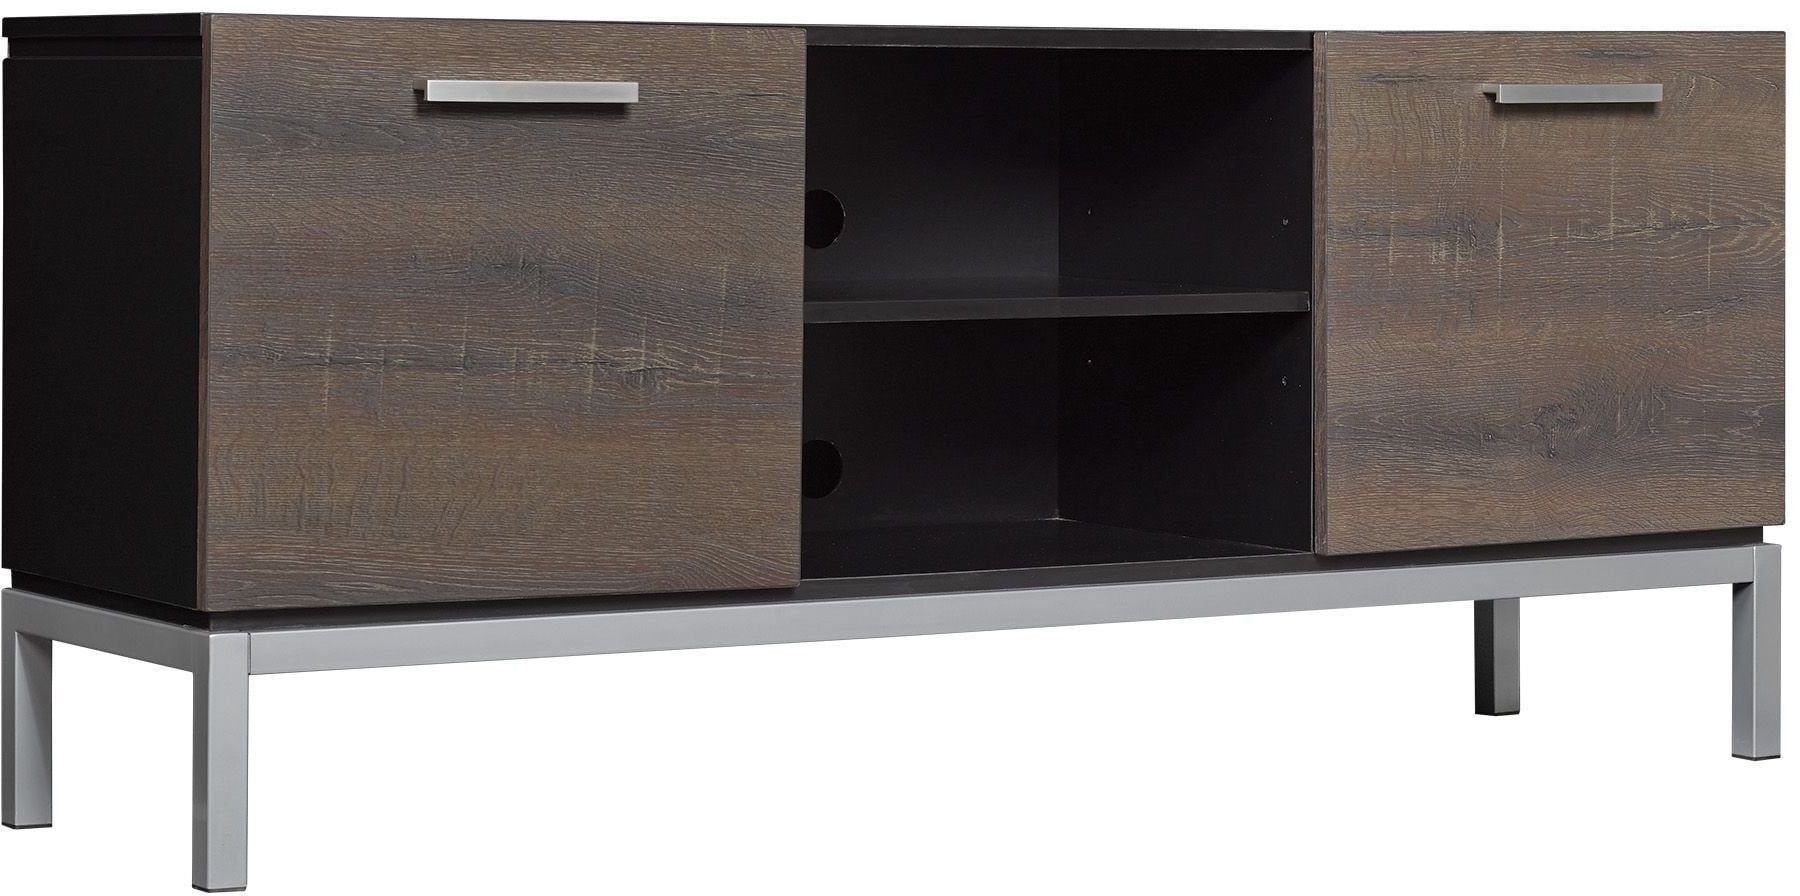 Bell 39 O Black Cutler Bay Tv Stand From Twin Star International Coleman Furniture